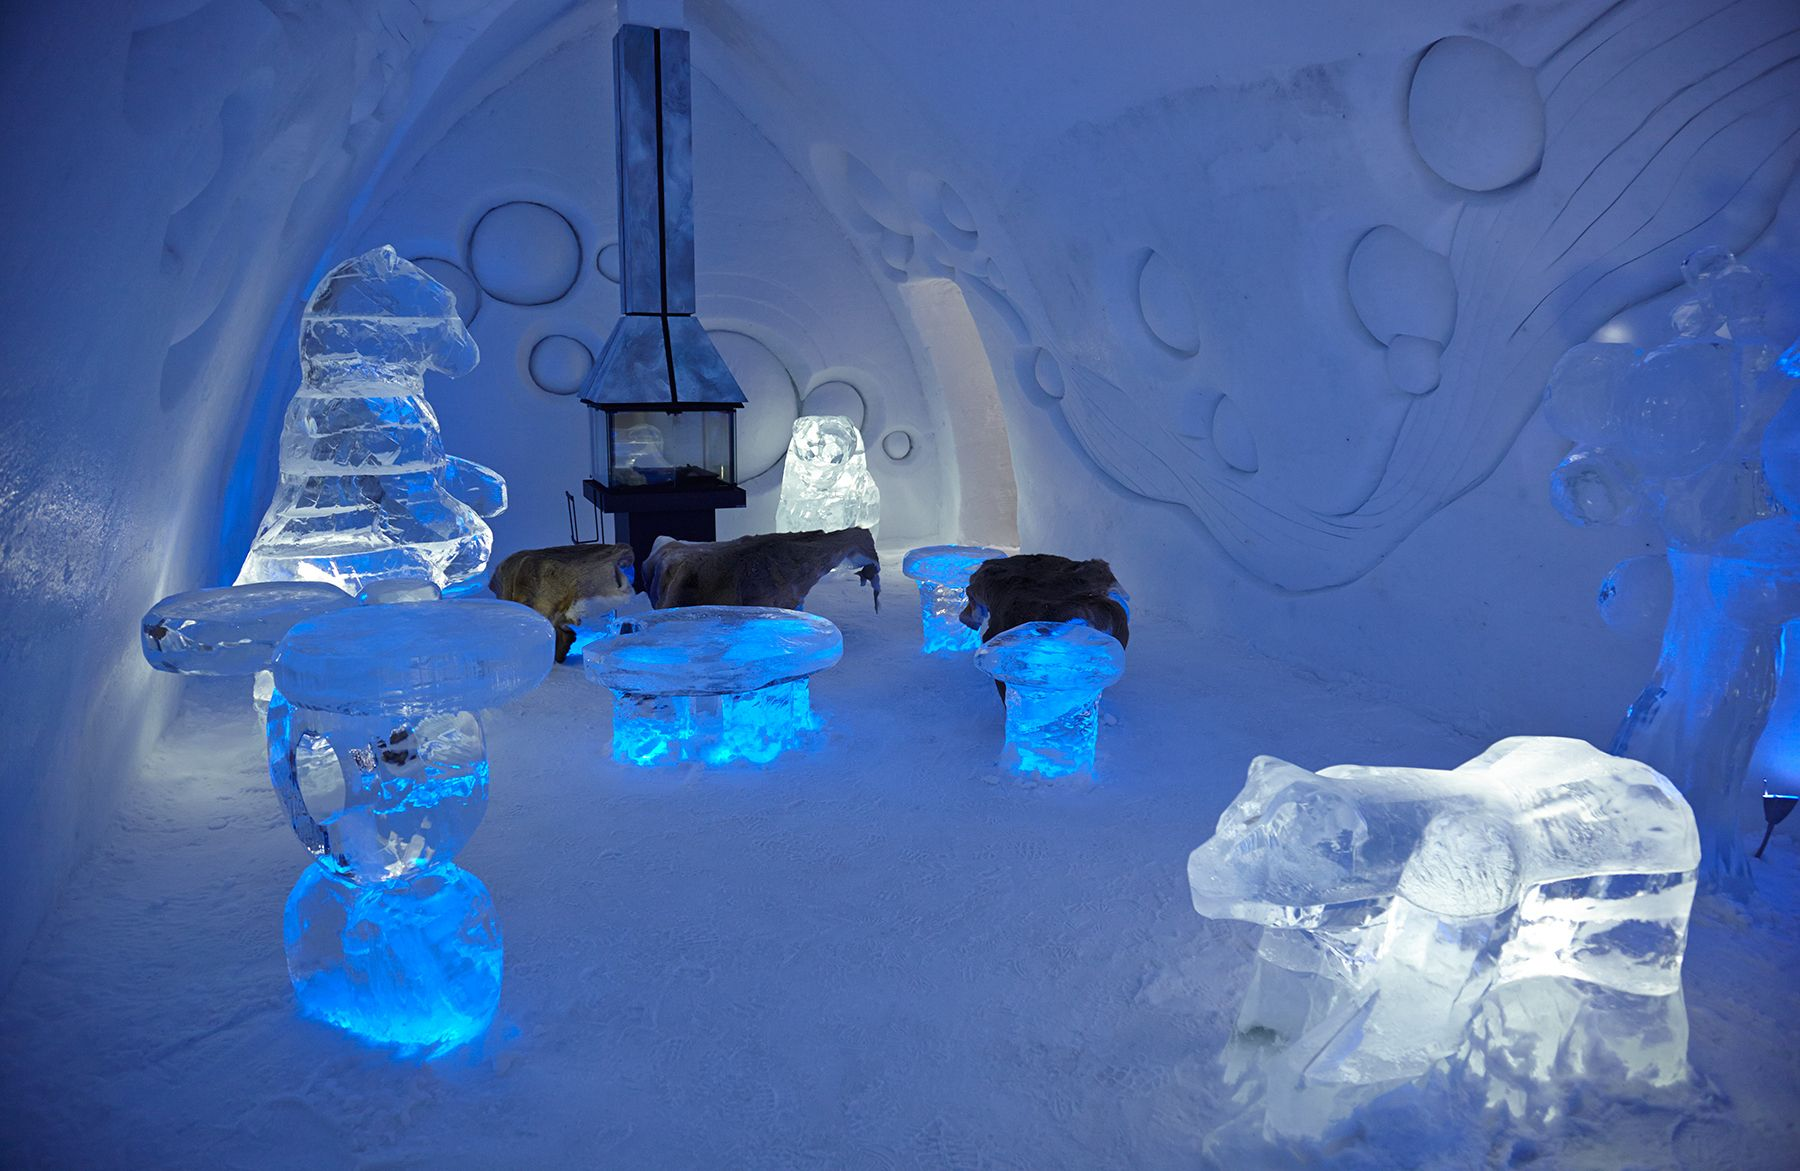 Bedroom at the Hotel De Glace, Quebec